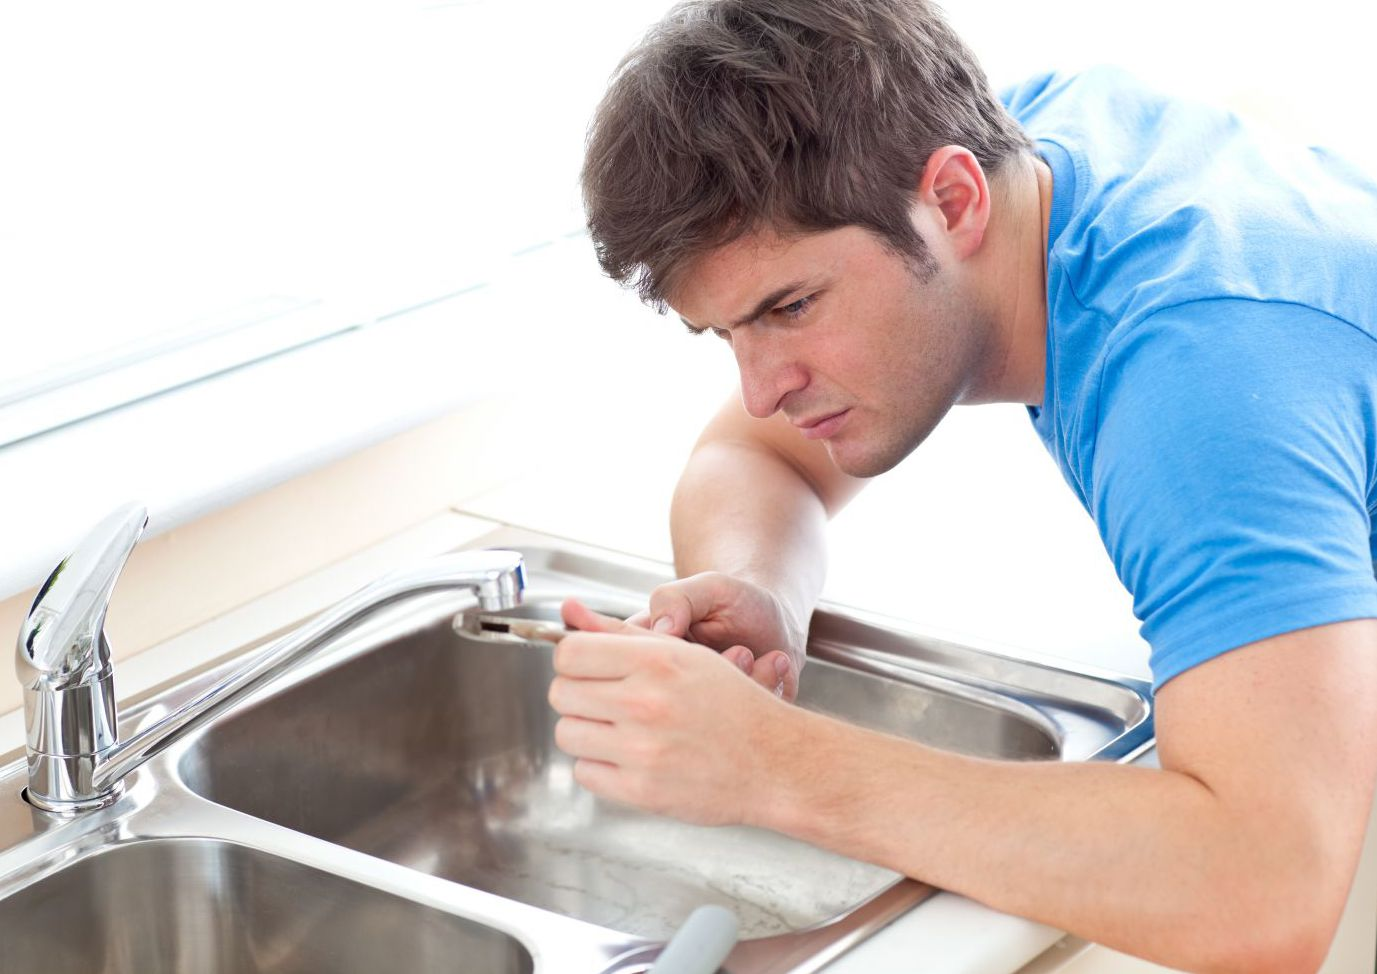 A technician providing plumbing services in Thomasville, NC